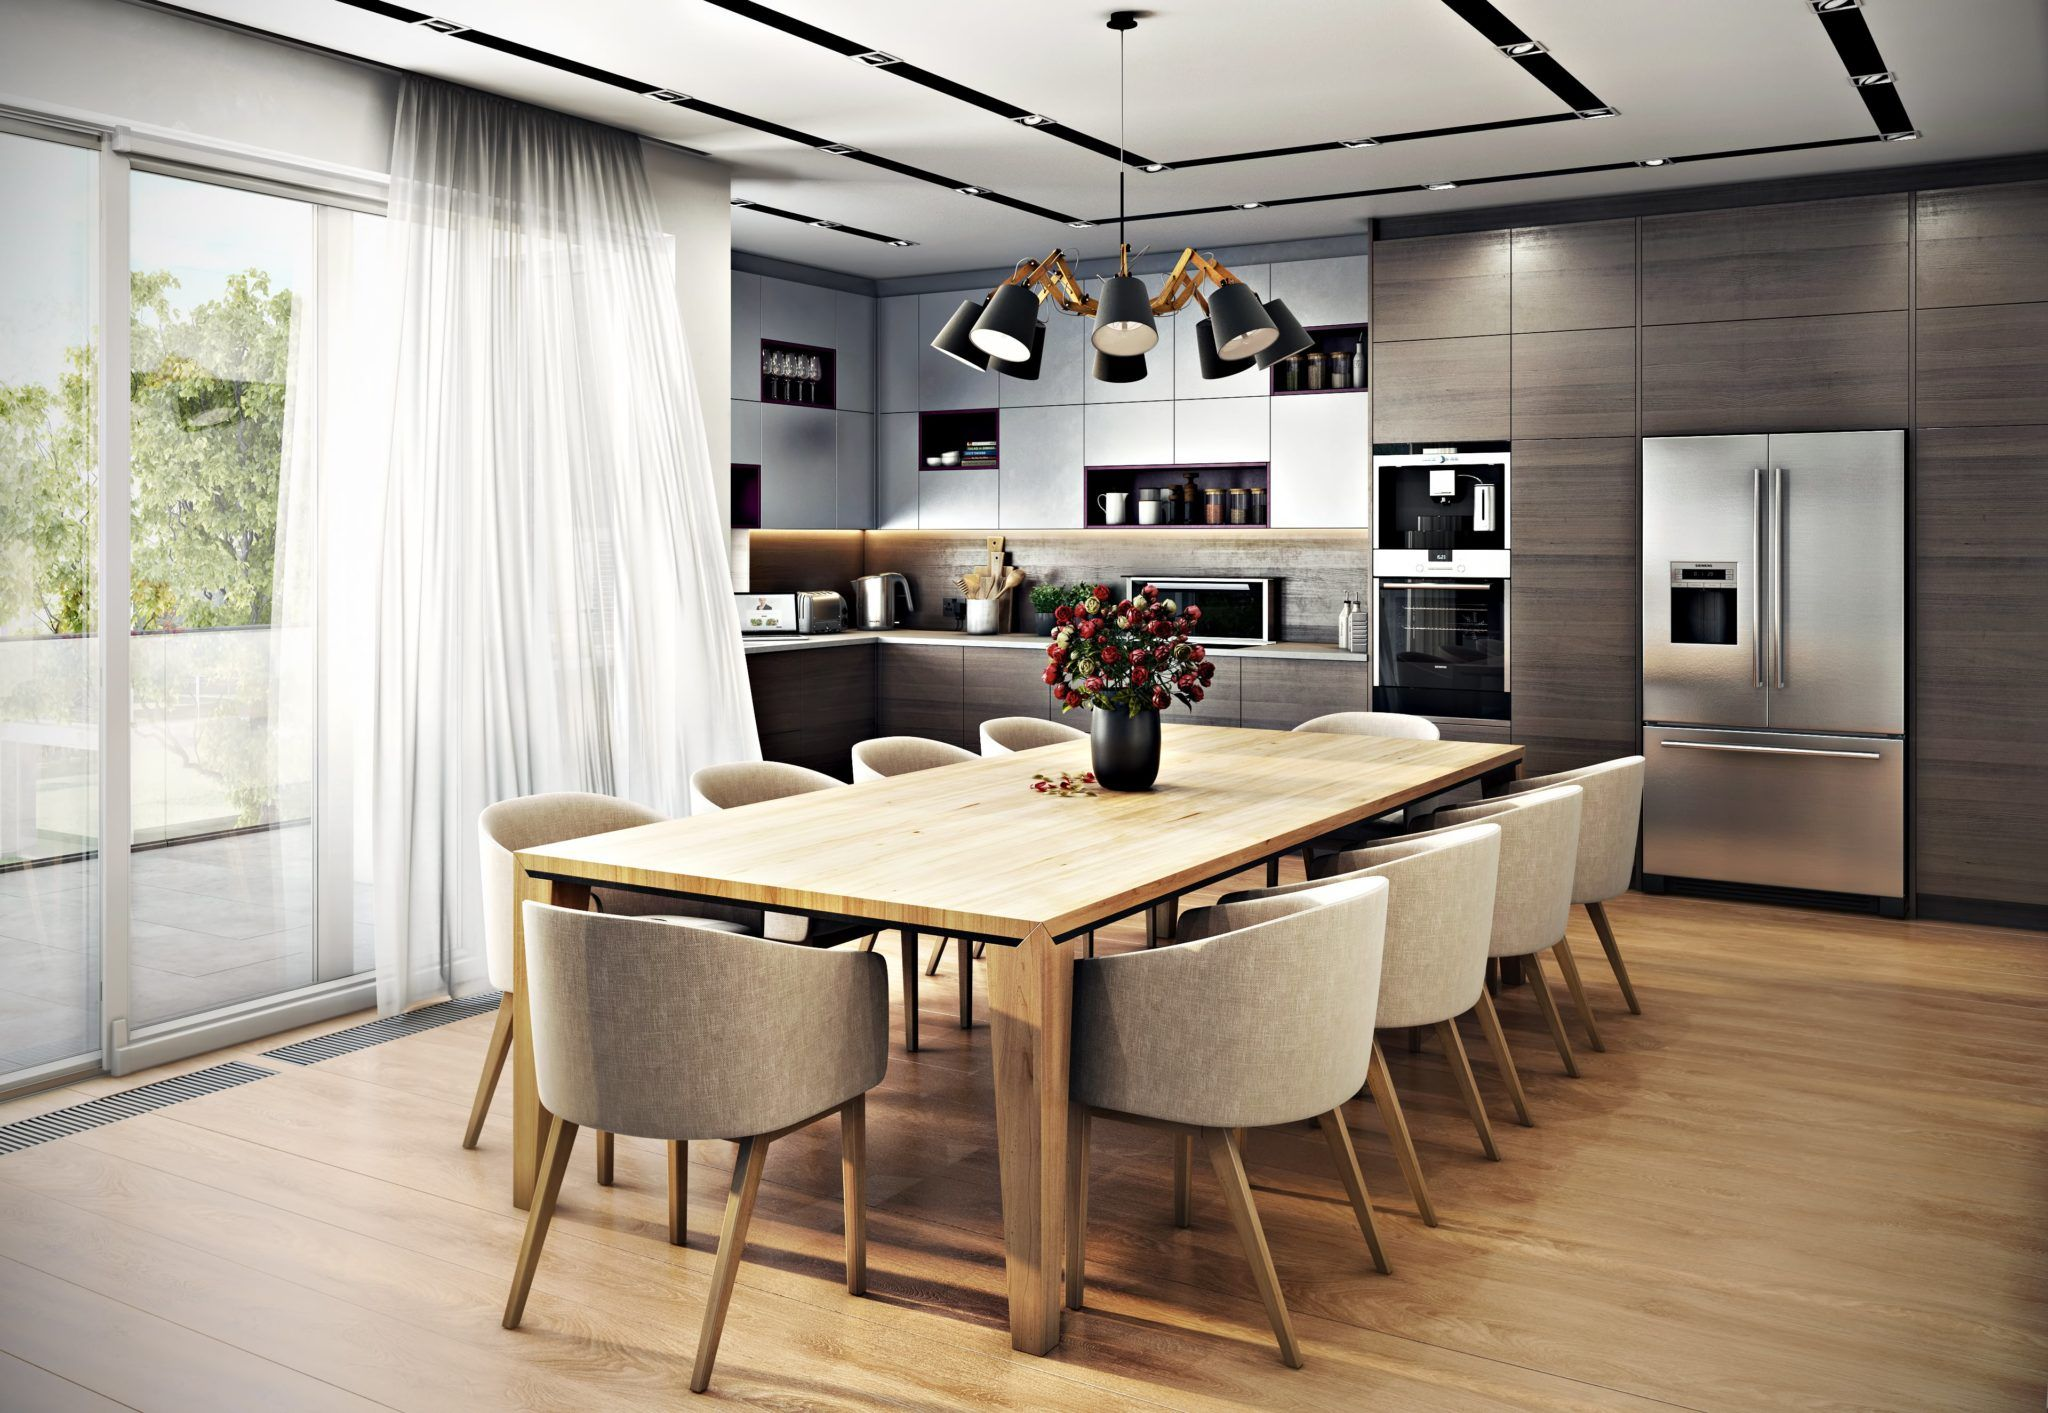 d rendering designer bottom what every the know interior to technology design engineering top needs